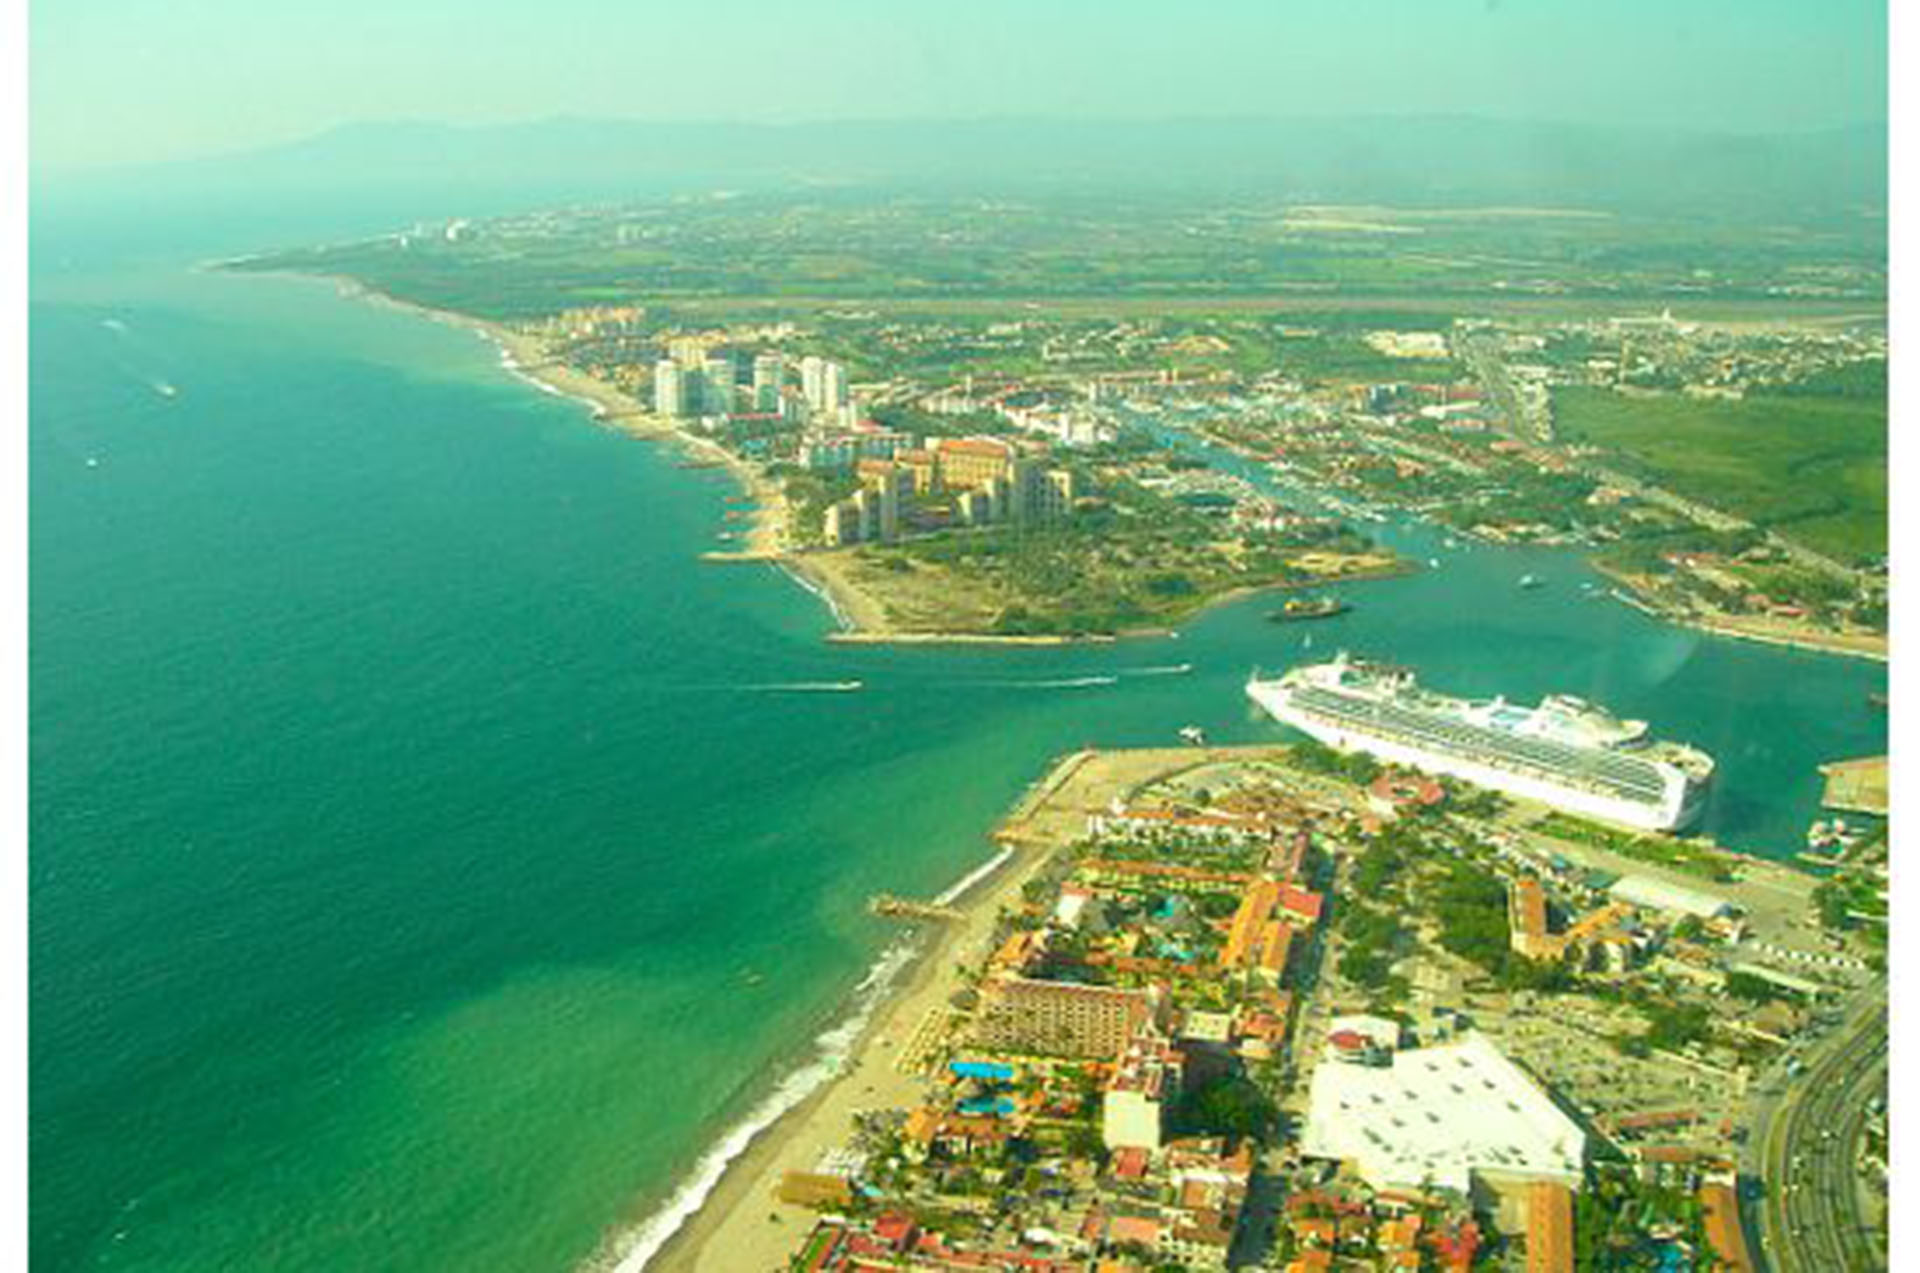 puerto vallarta mexico map with Puerto Vallarta on Puerto Vallarta moreover Why You Should Book Your Next Vacation In Cancun together with Professionales del turismo likewise Hotel Review G150793 D263326 Reviews Mayan Palace Puerto Vallarta Puerto Vallarta in addition 7005836577.